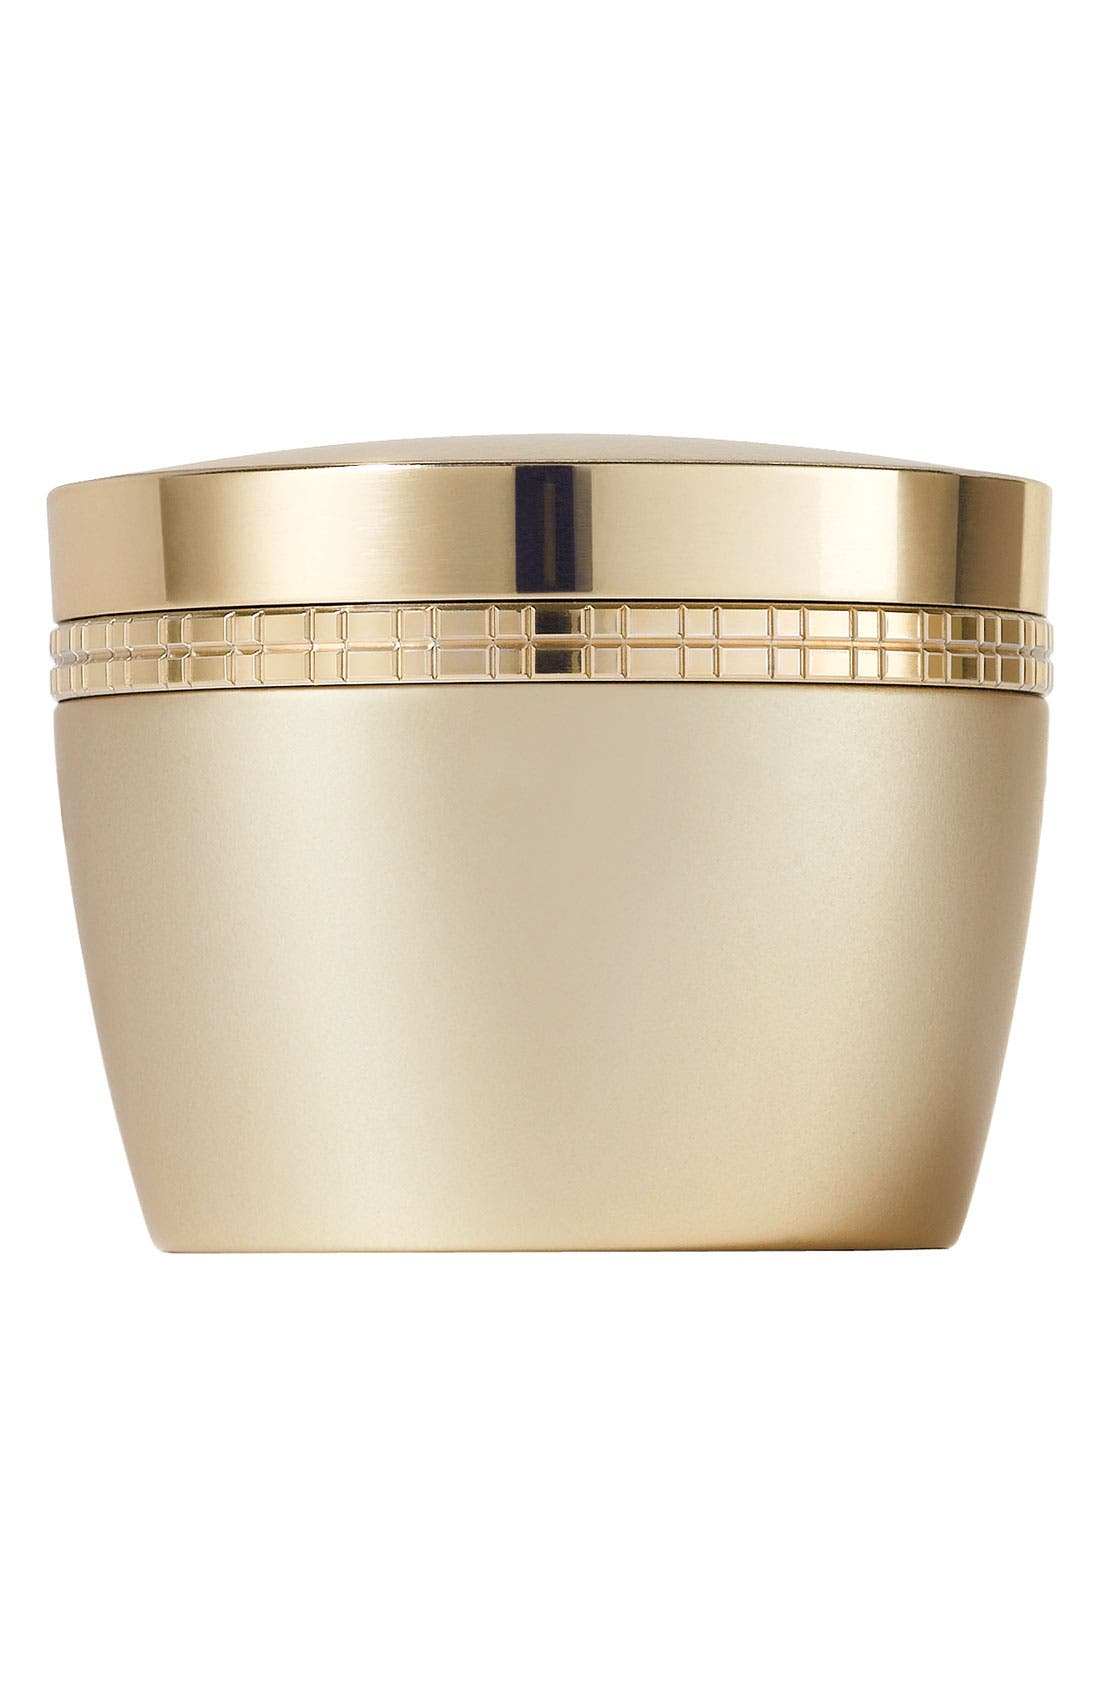 ELIZABETH ARDEN Ceramide Premiere Regeneration Eye Cream, Main, color, NO COLOR